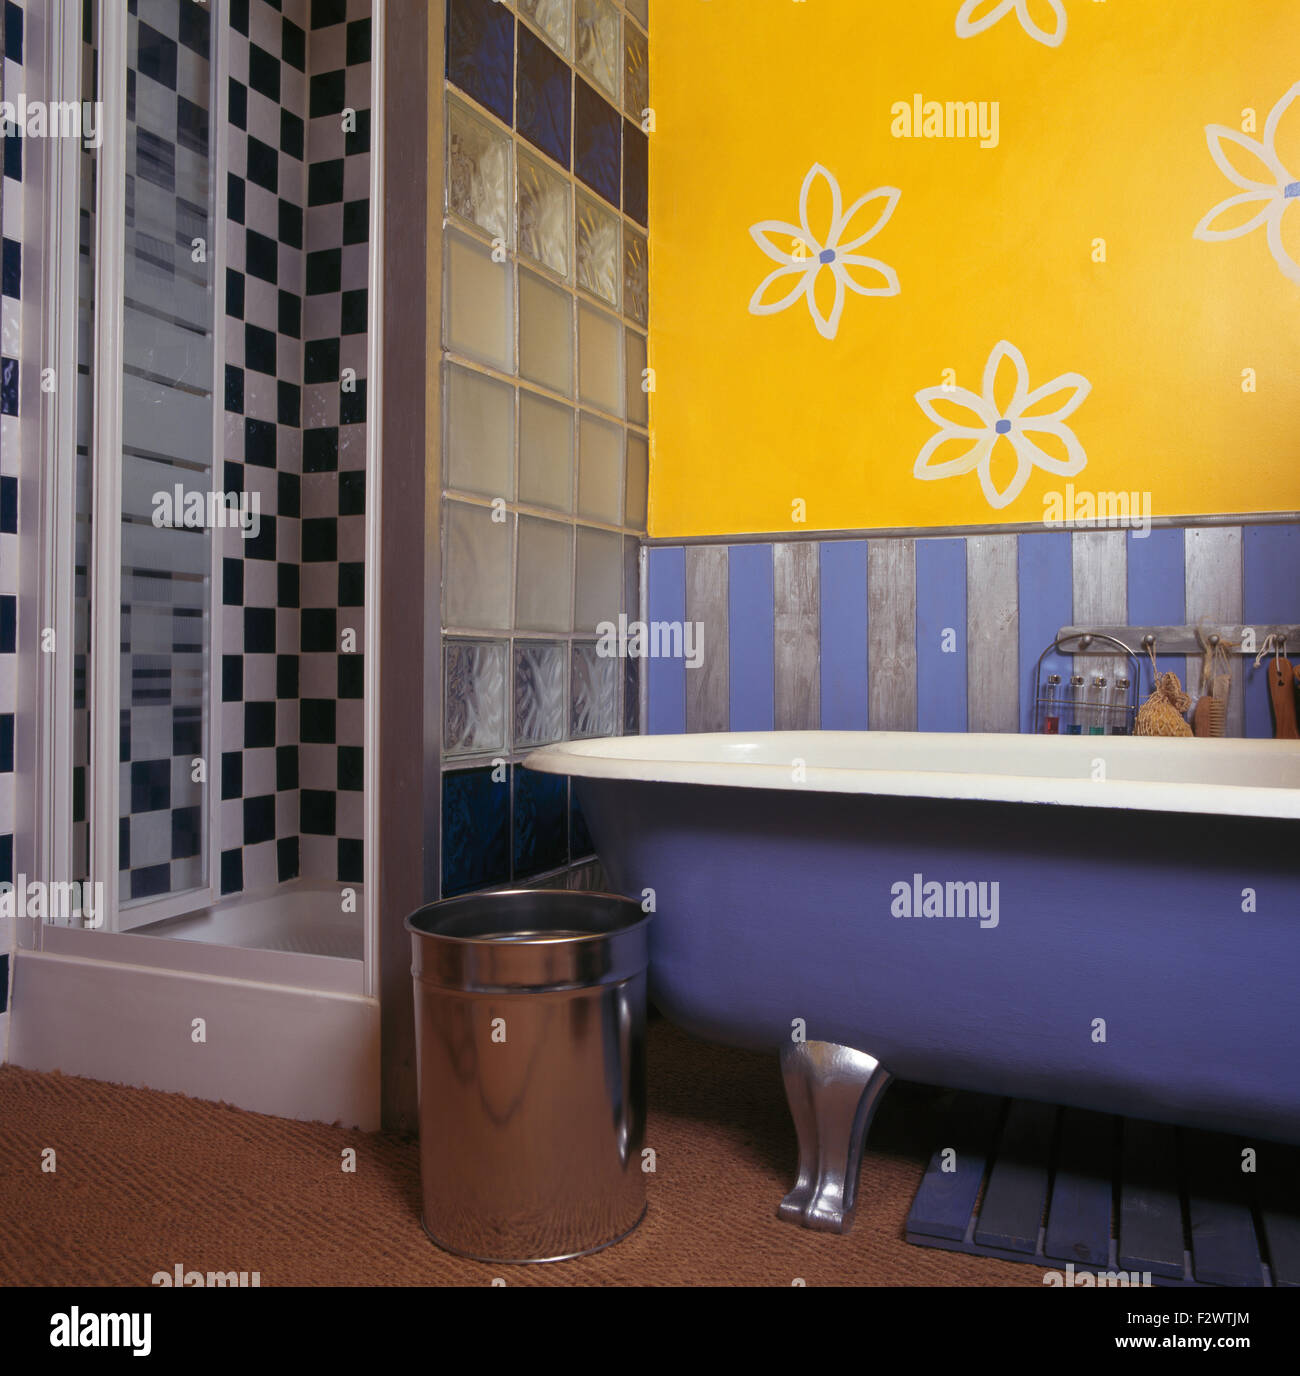 Stylised flowers drawn on wall above roll top bath in bright yellow nineties bathroom with glass shower cabinet - Stock Image